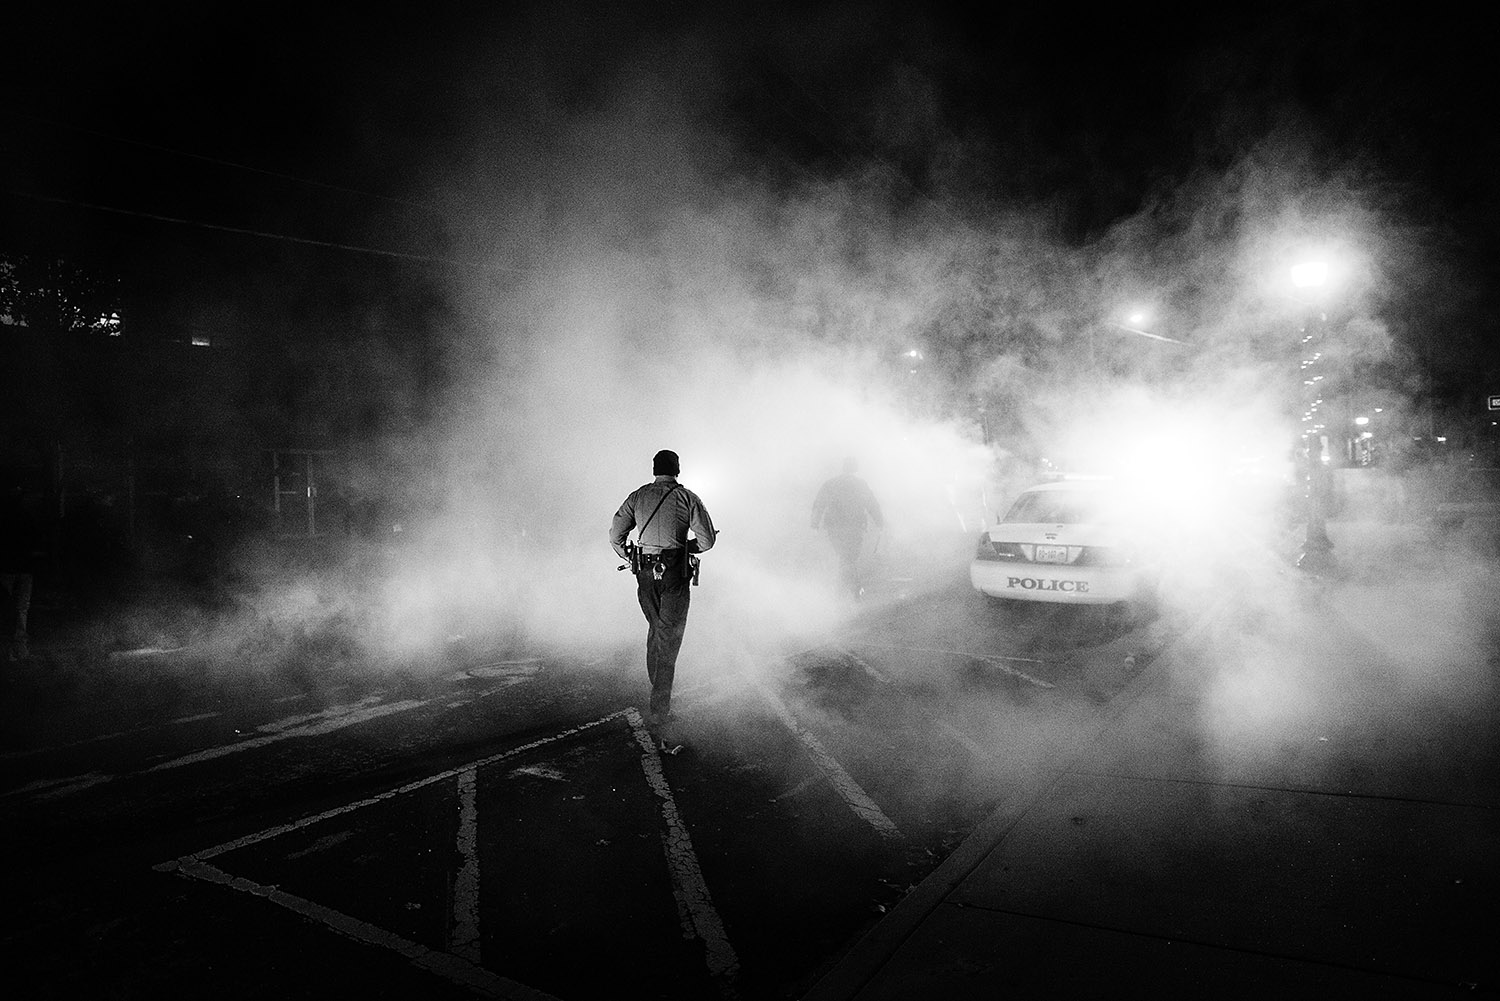 FERGUSON, MO - NOVEMBER 25: A police officer wades into a cloud of smoke as numerous police respond to the destruction of a police car parked outside the Ferguson City Hall. Angered protesters marched past downtown Ferguson a night after the riots and destruction followed the announcement of the grand jury's decision not to indict white police officer Darren Wilson in the death of unarmed black teen Michael Brown. (Photo by Benjamin Lowy/Reportage by Getty Images)